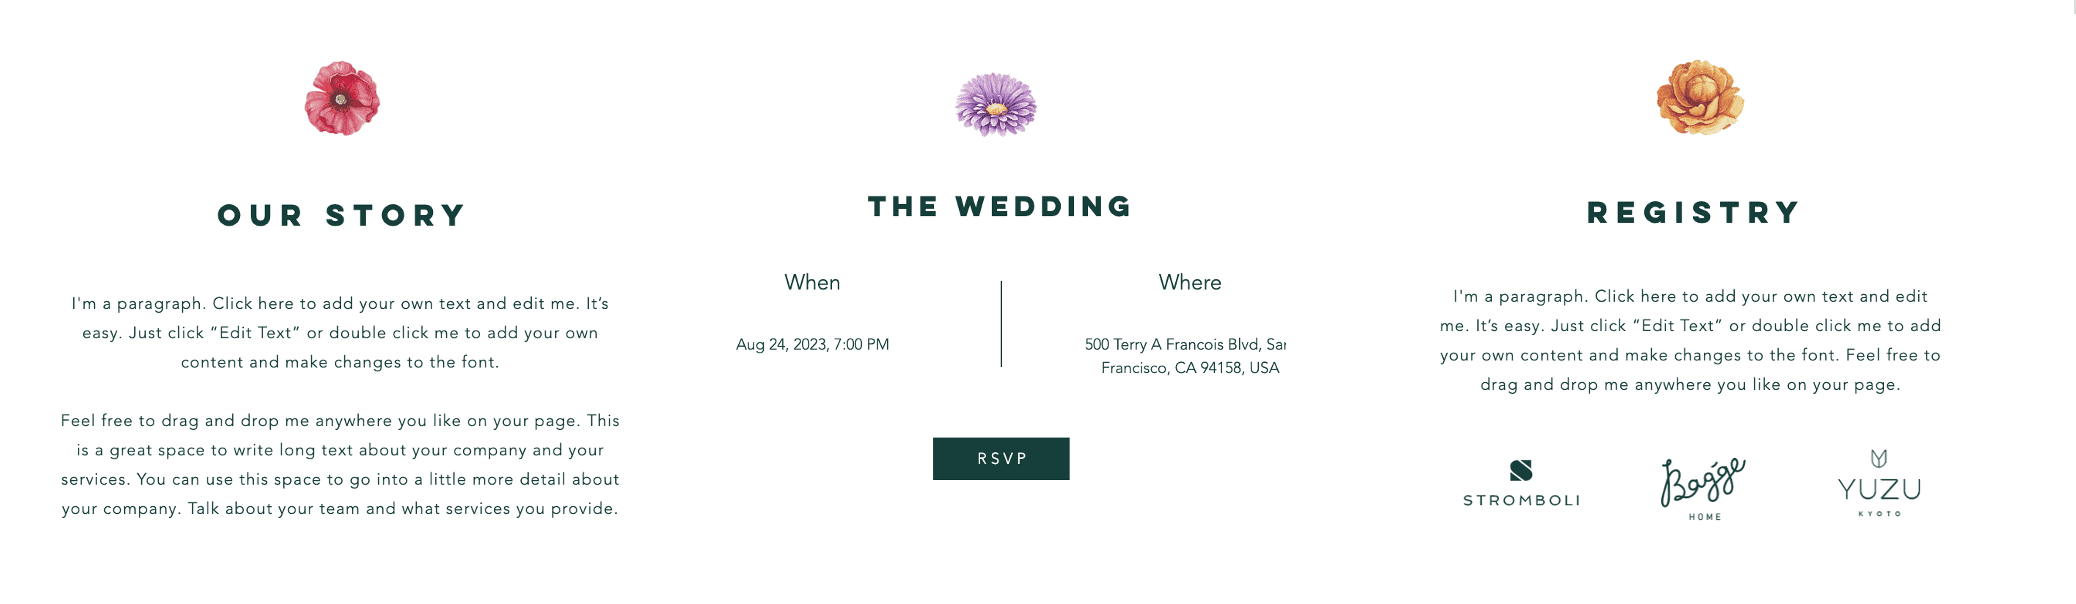 Wix's Floral Wedding Invitation